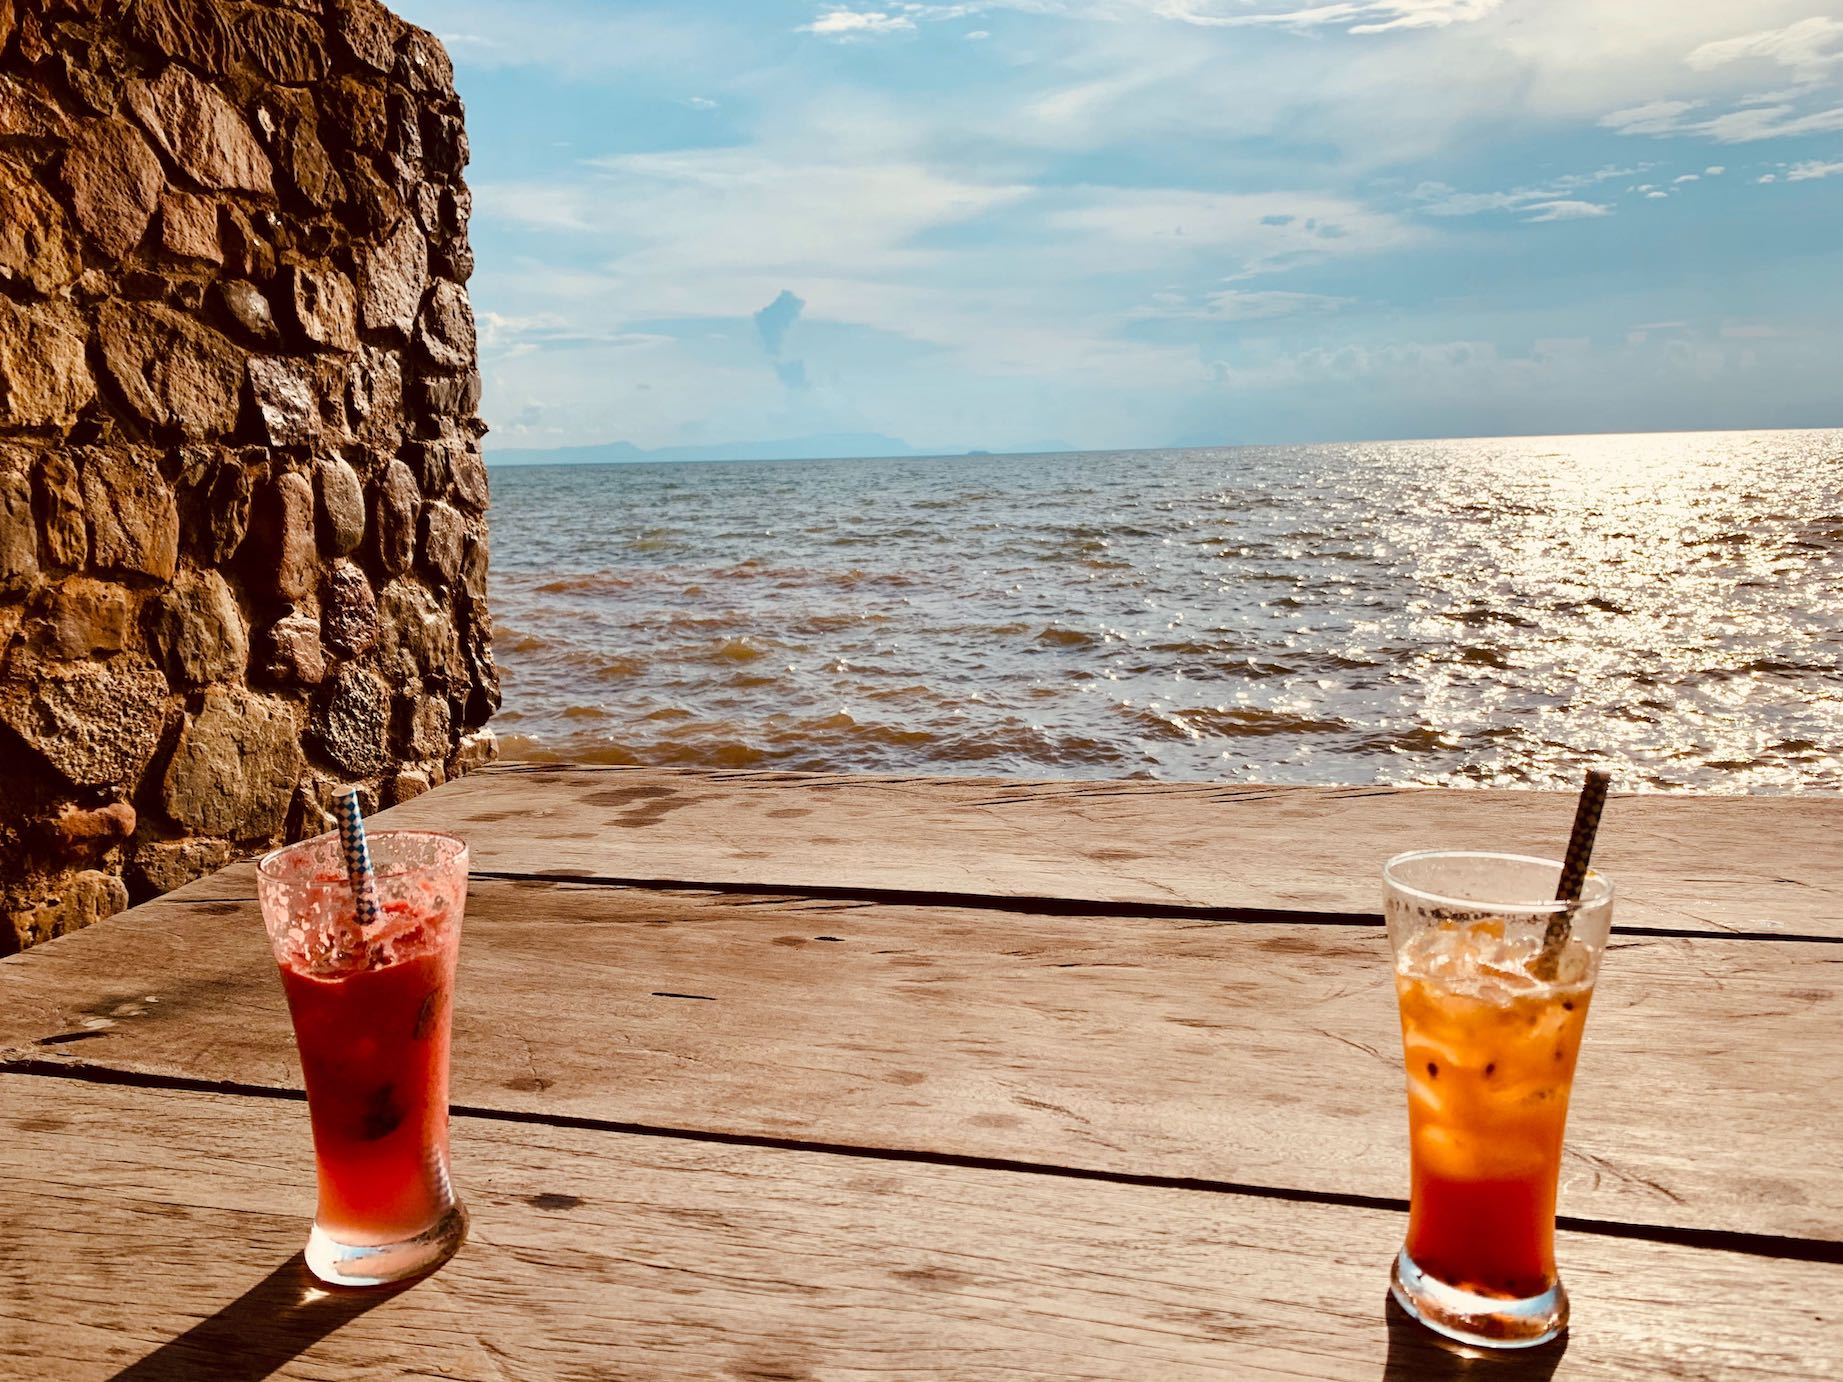 Sea views from The Strand Restaurant in Kep